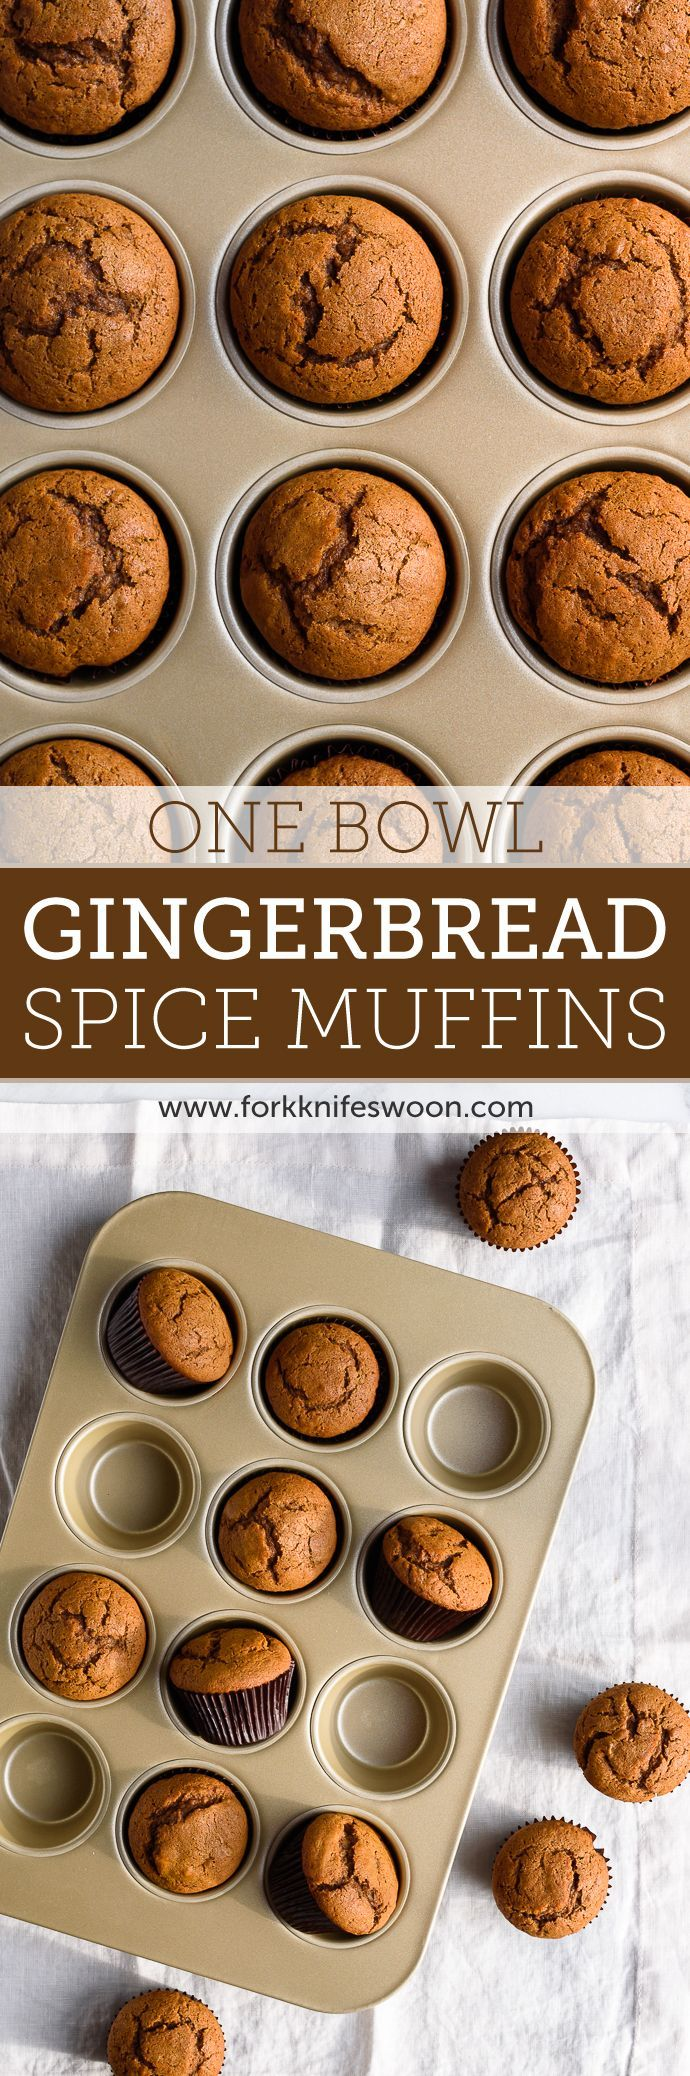 One Bowl Gingerbread Muffins | Fork Knife Swoon @forkknifeswoon #desserts http://www.forkknifeswoon.com/food-drink/2014/12/one-bowl-spiced-gingerbread-muffins/